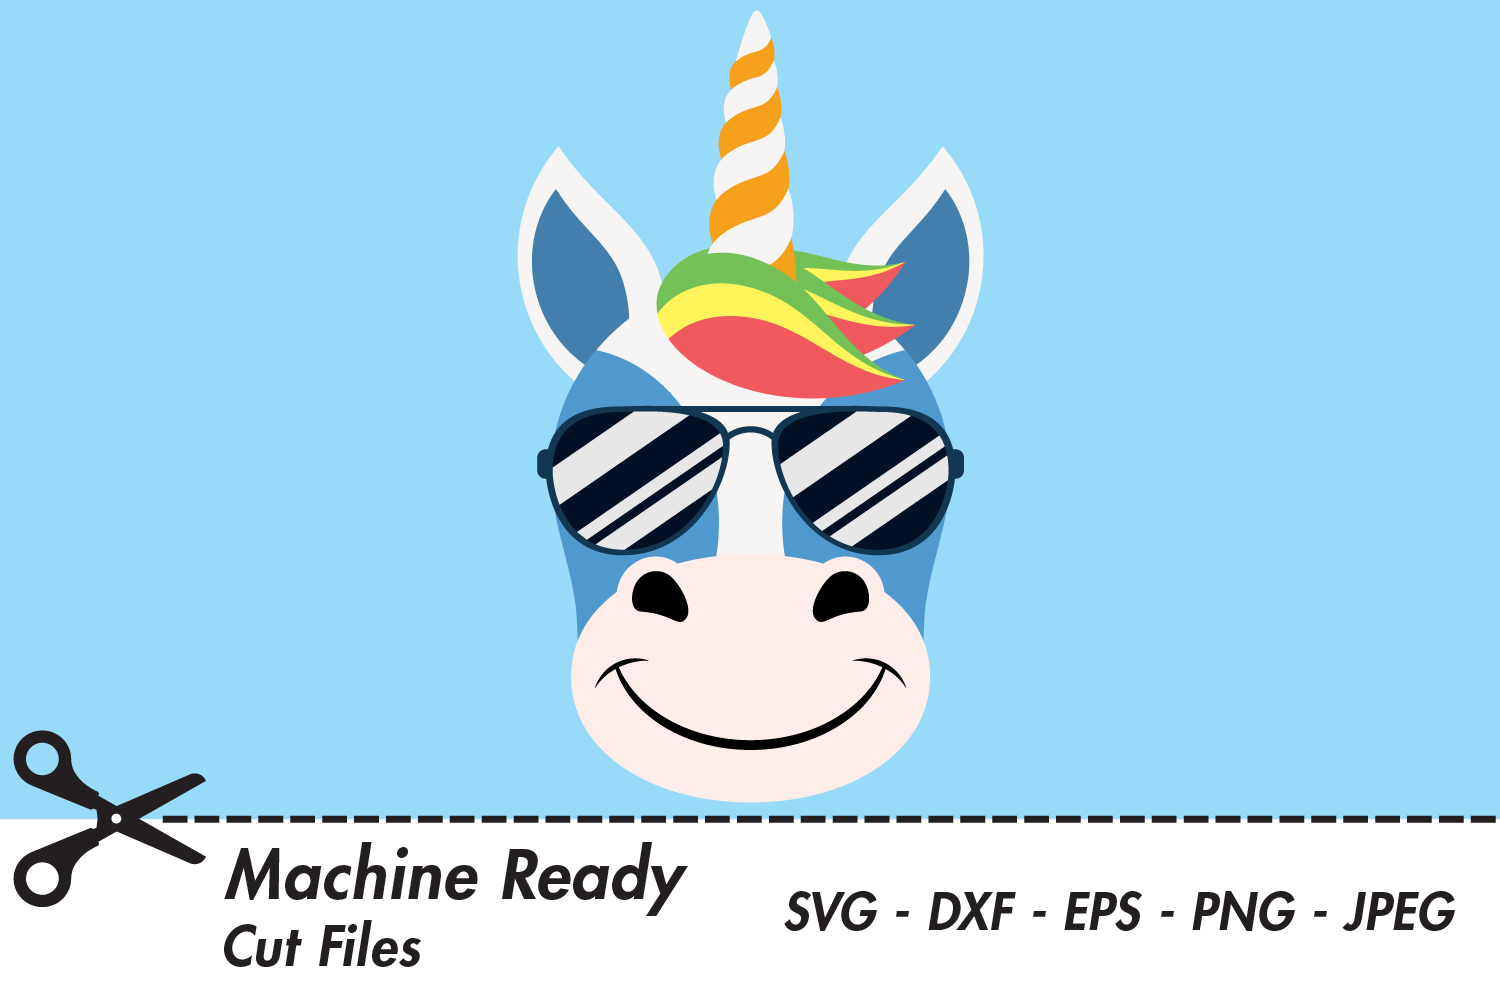 Download Free Cute Boy Unicorn Face With Shades Graphic By Captaincreative for Cricut Explore, Silhouette and other cutting machines.